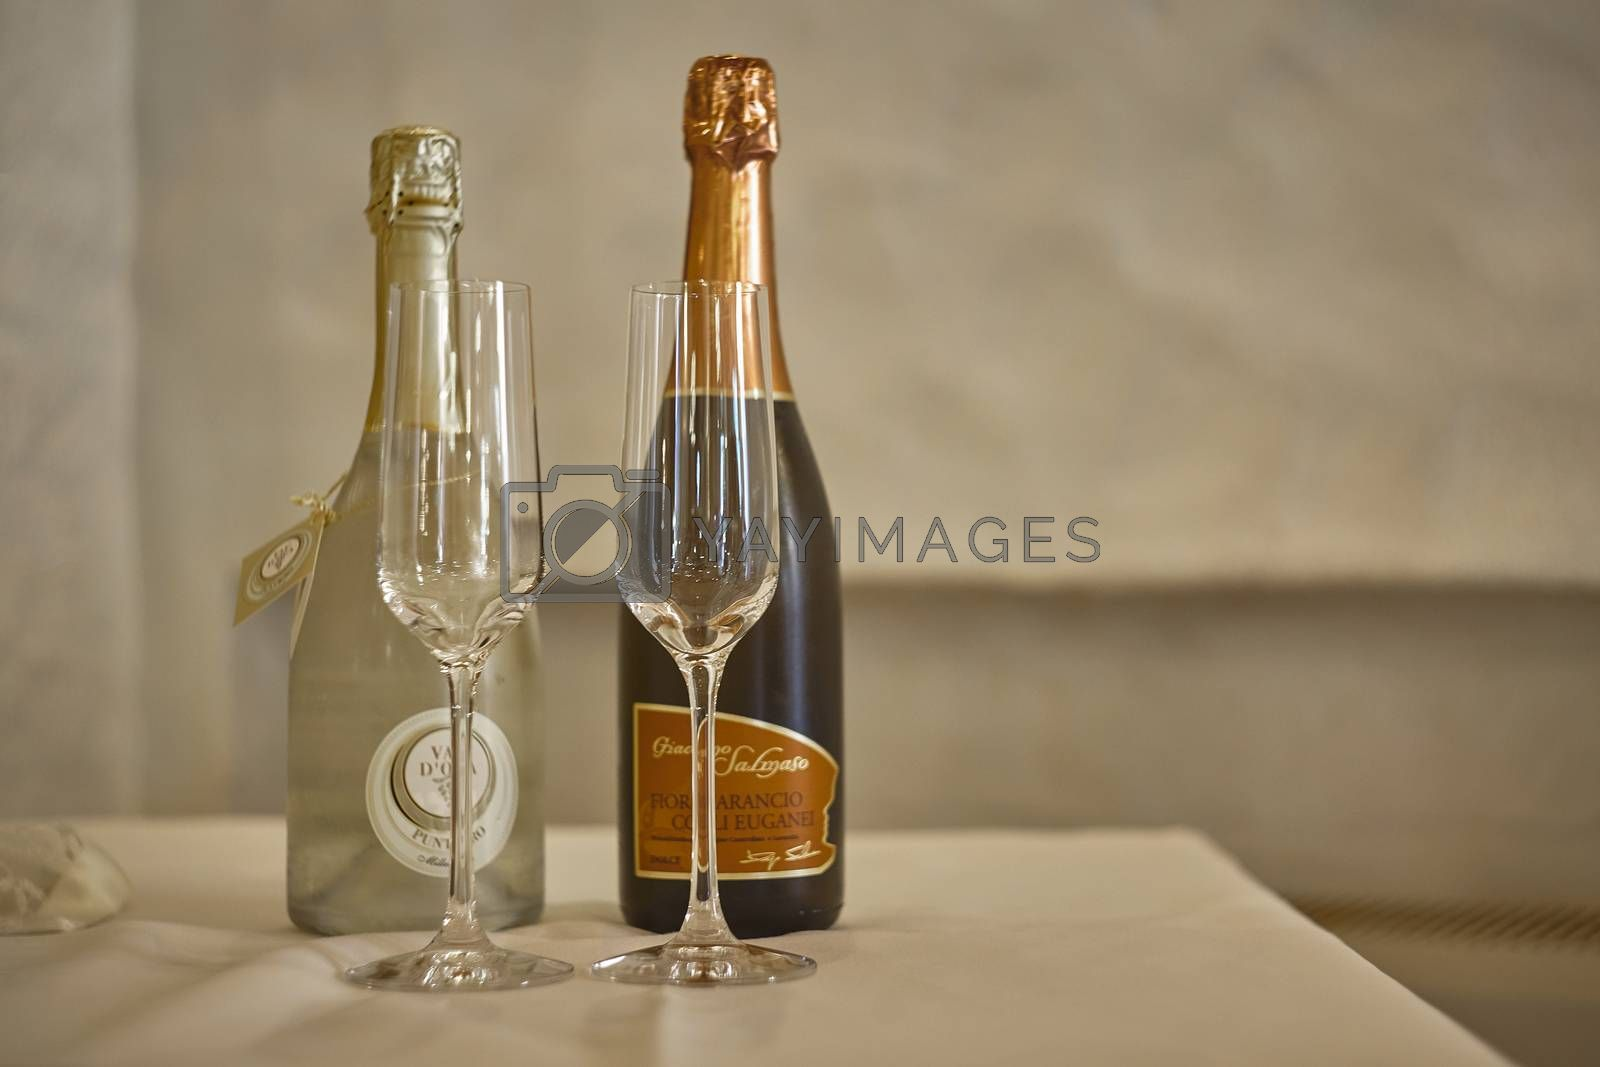 Two wine bottles and two clean glasses on the table await the toast for the festivities